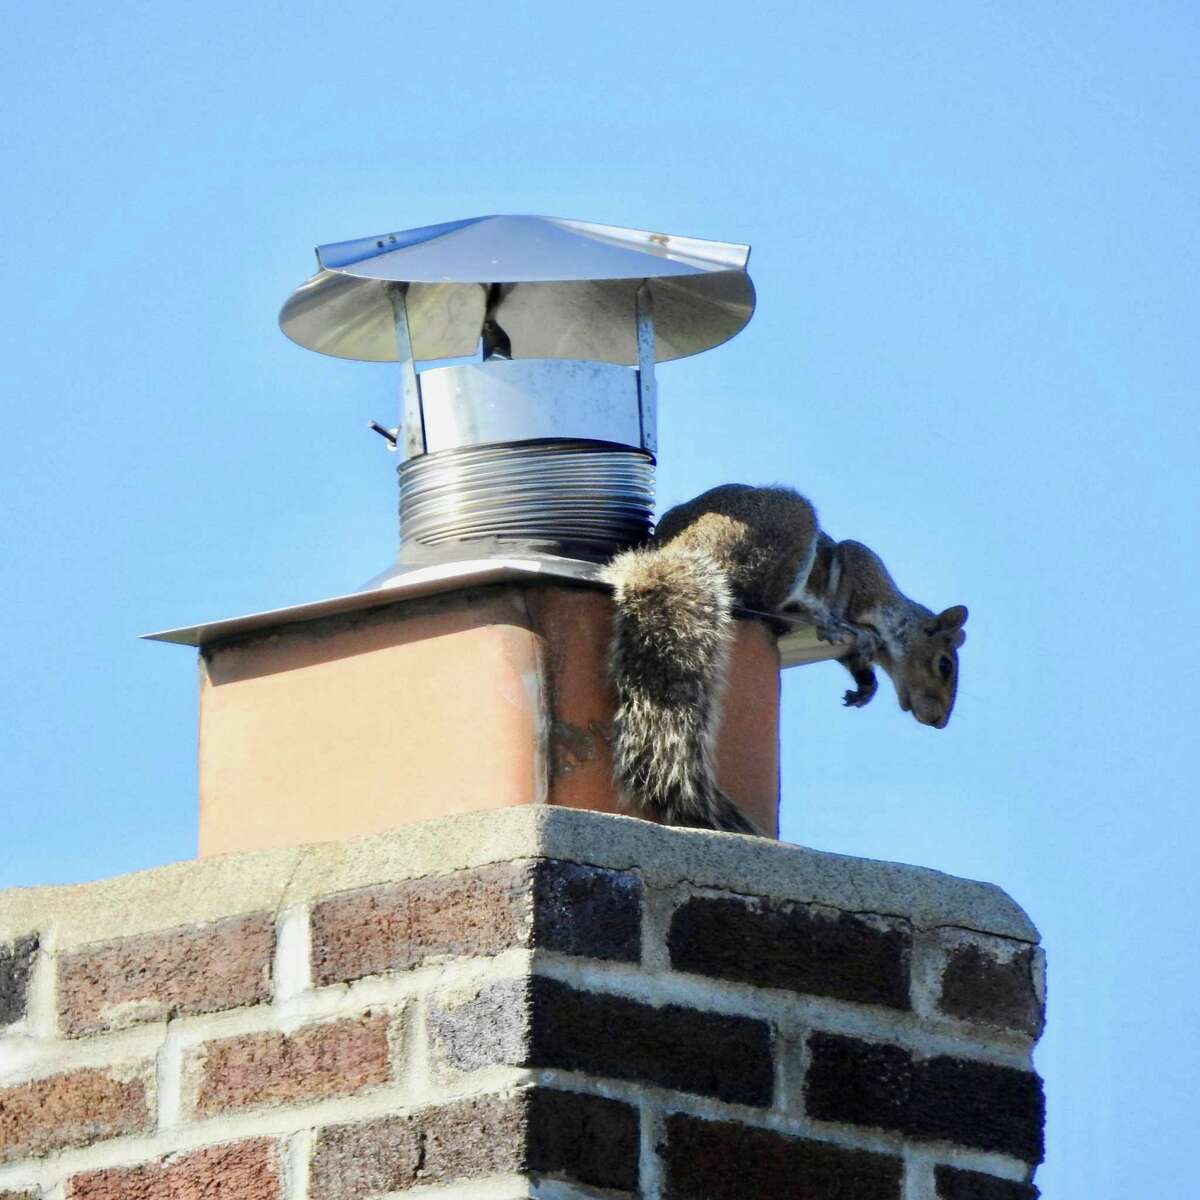 In Colonie, a neighborhood squirrel climbs the chimney every sunset and just hangs out on the top, says the photographer, Barbara Unser.